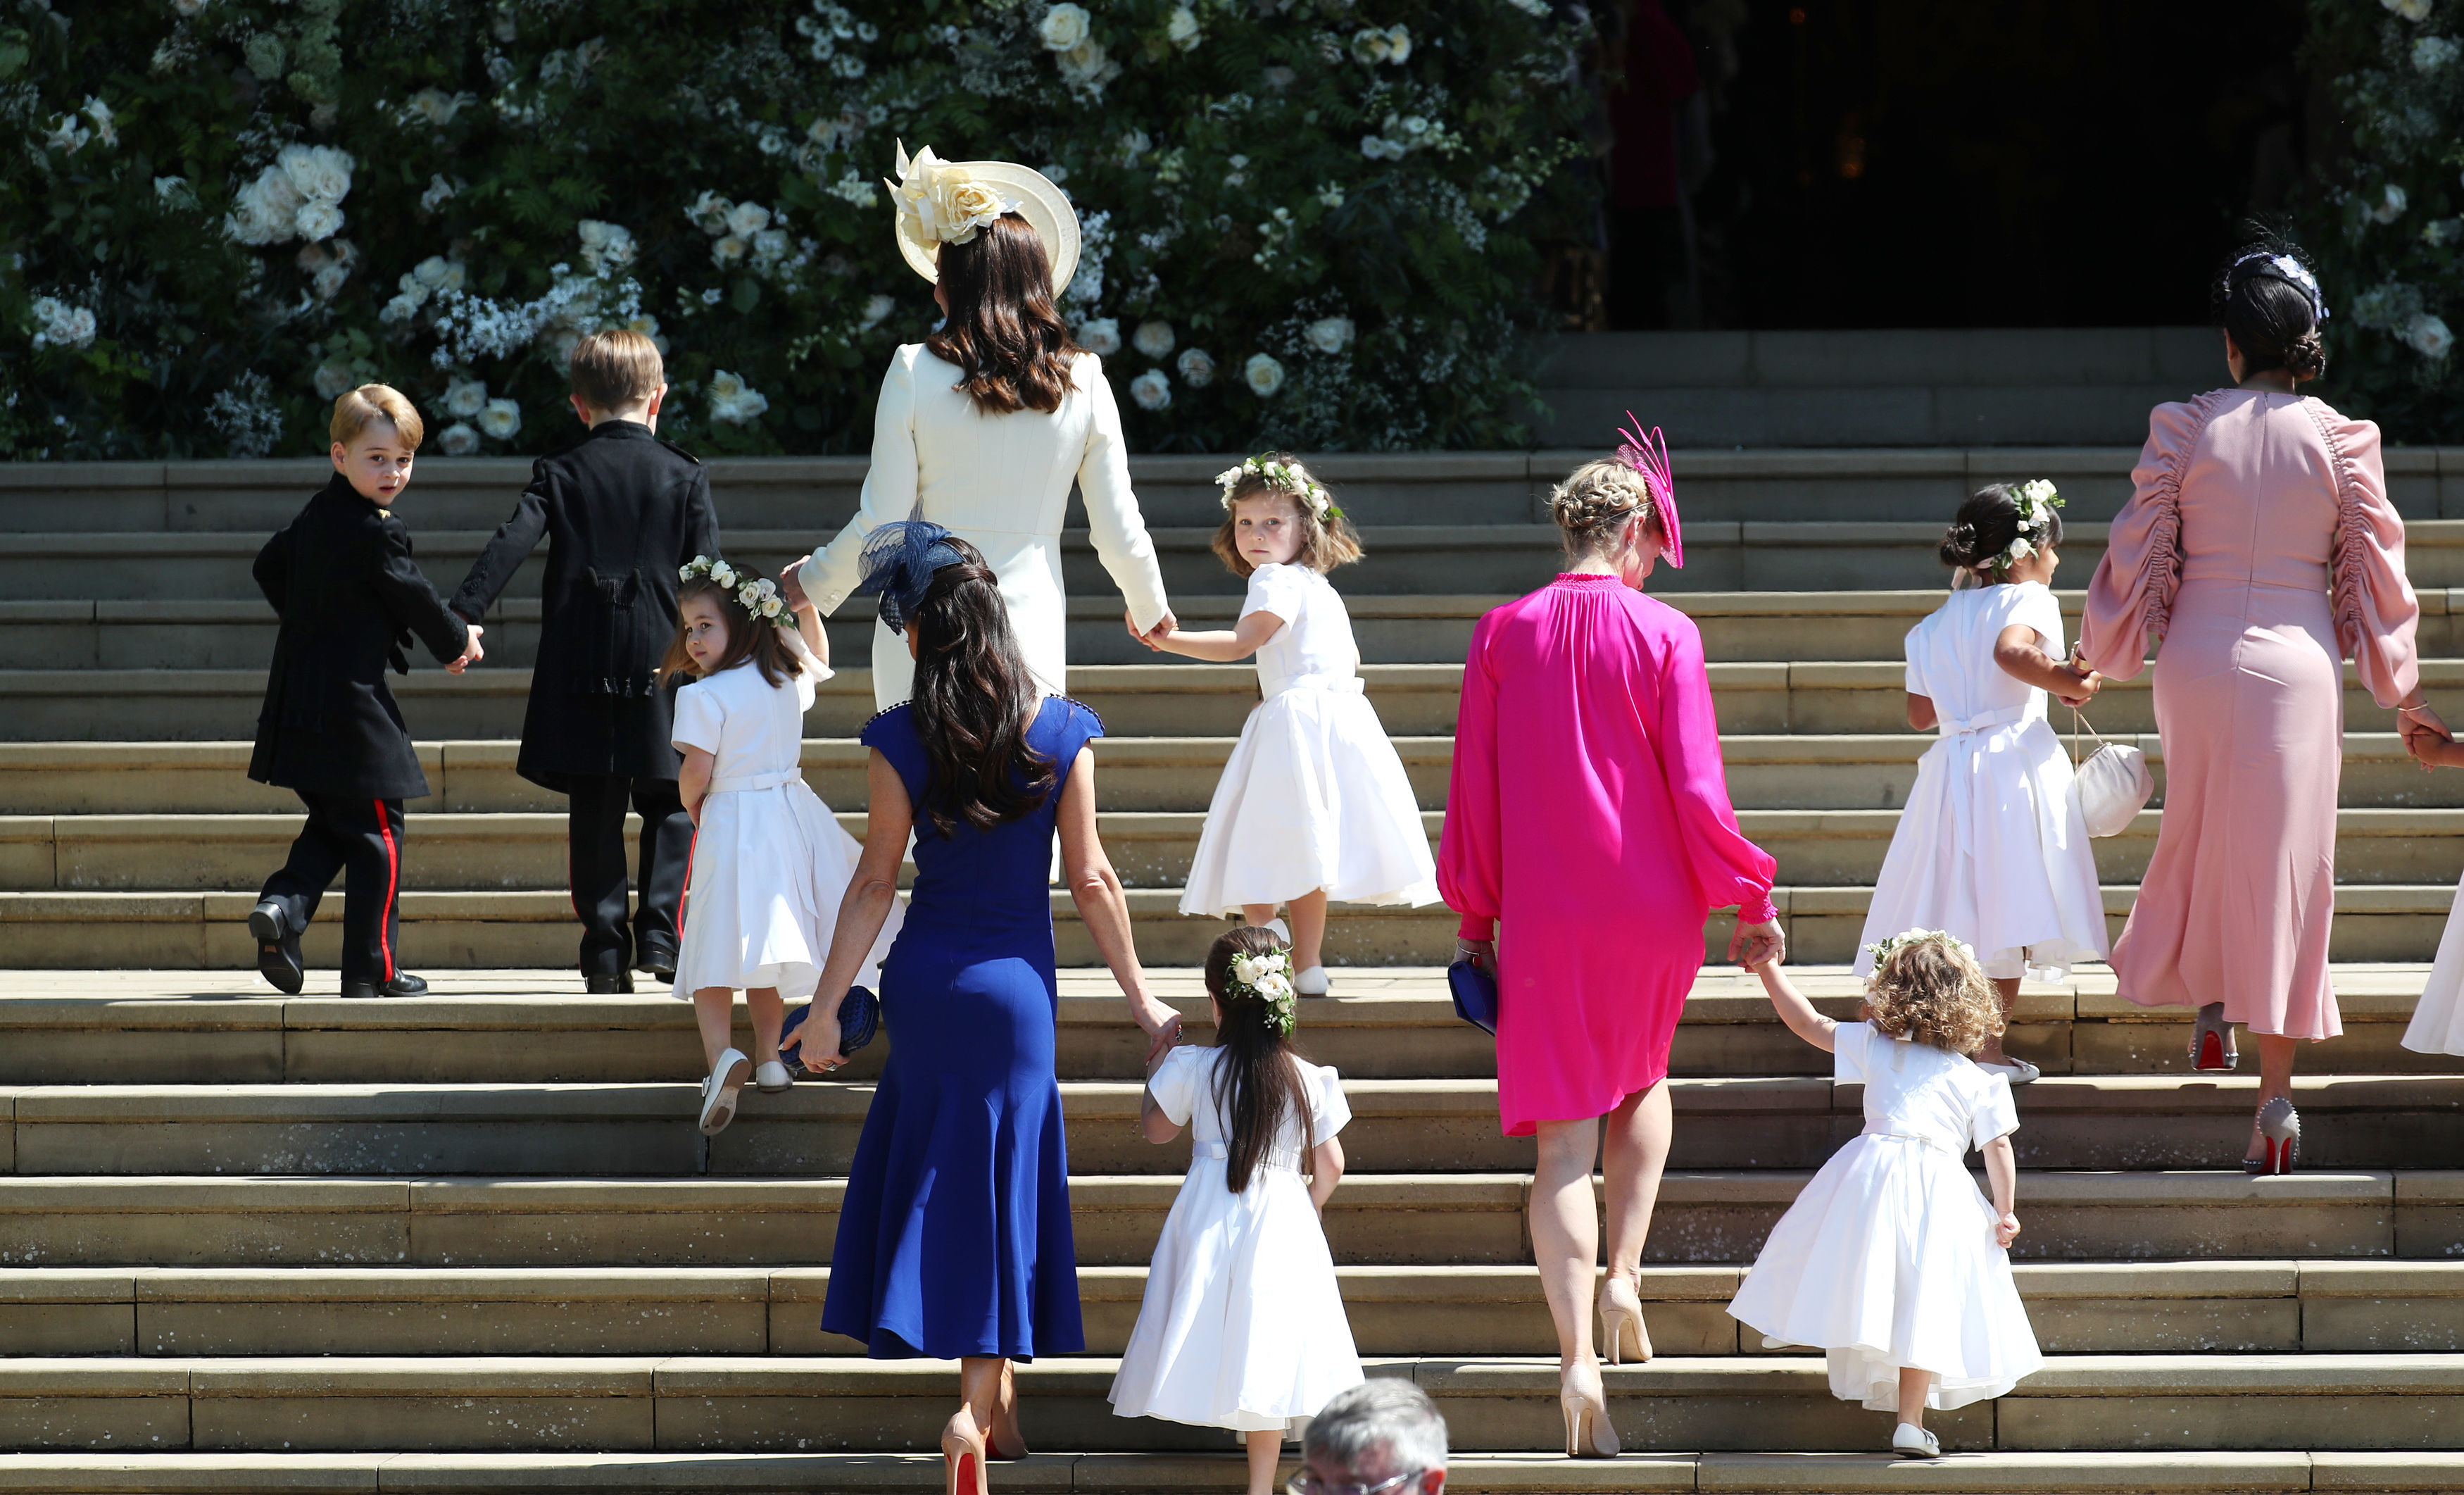 Prince George and Princess Charlotte stole the show at the 2018 royal wedding. (Photo by DJane Barlow - WPA Pool/Getty Images)